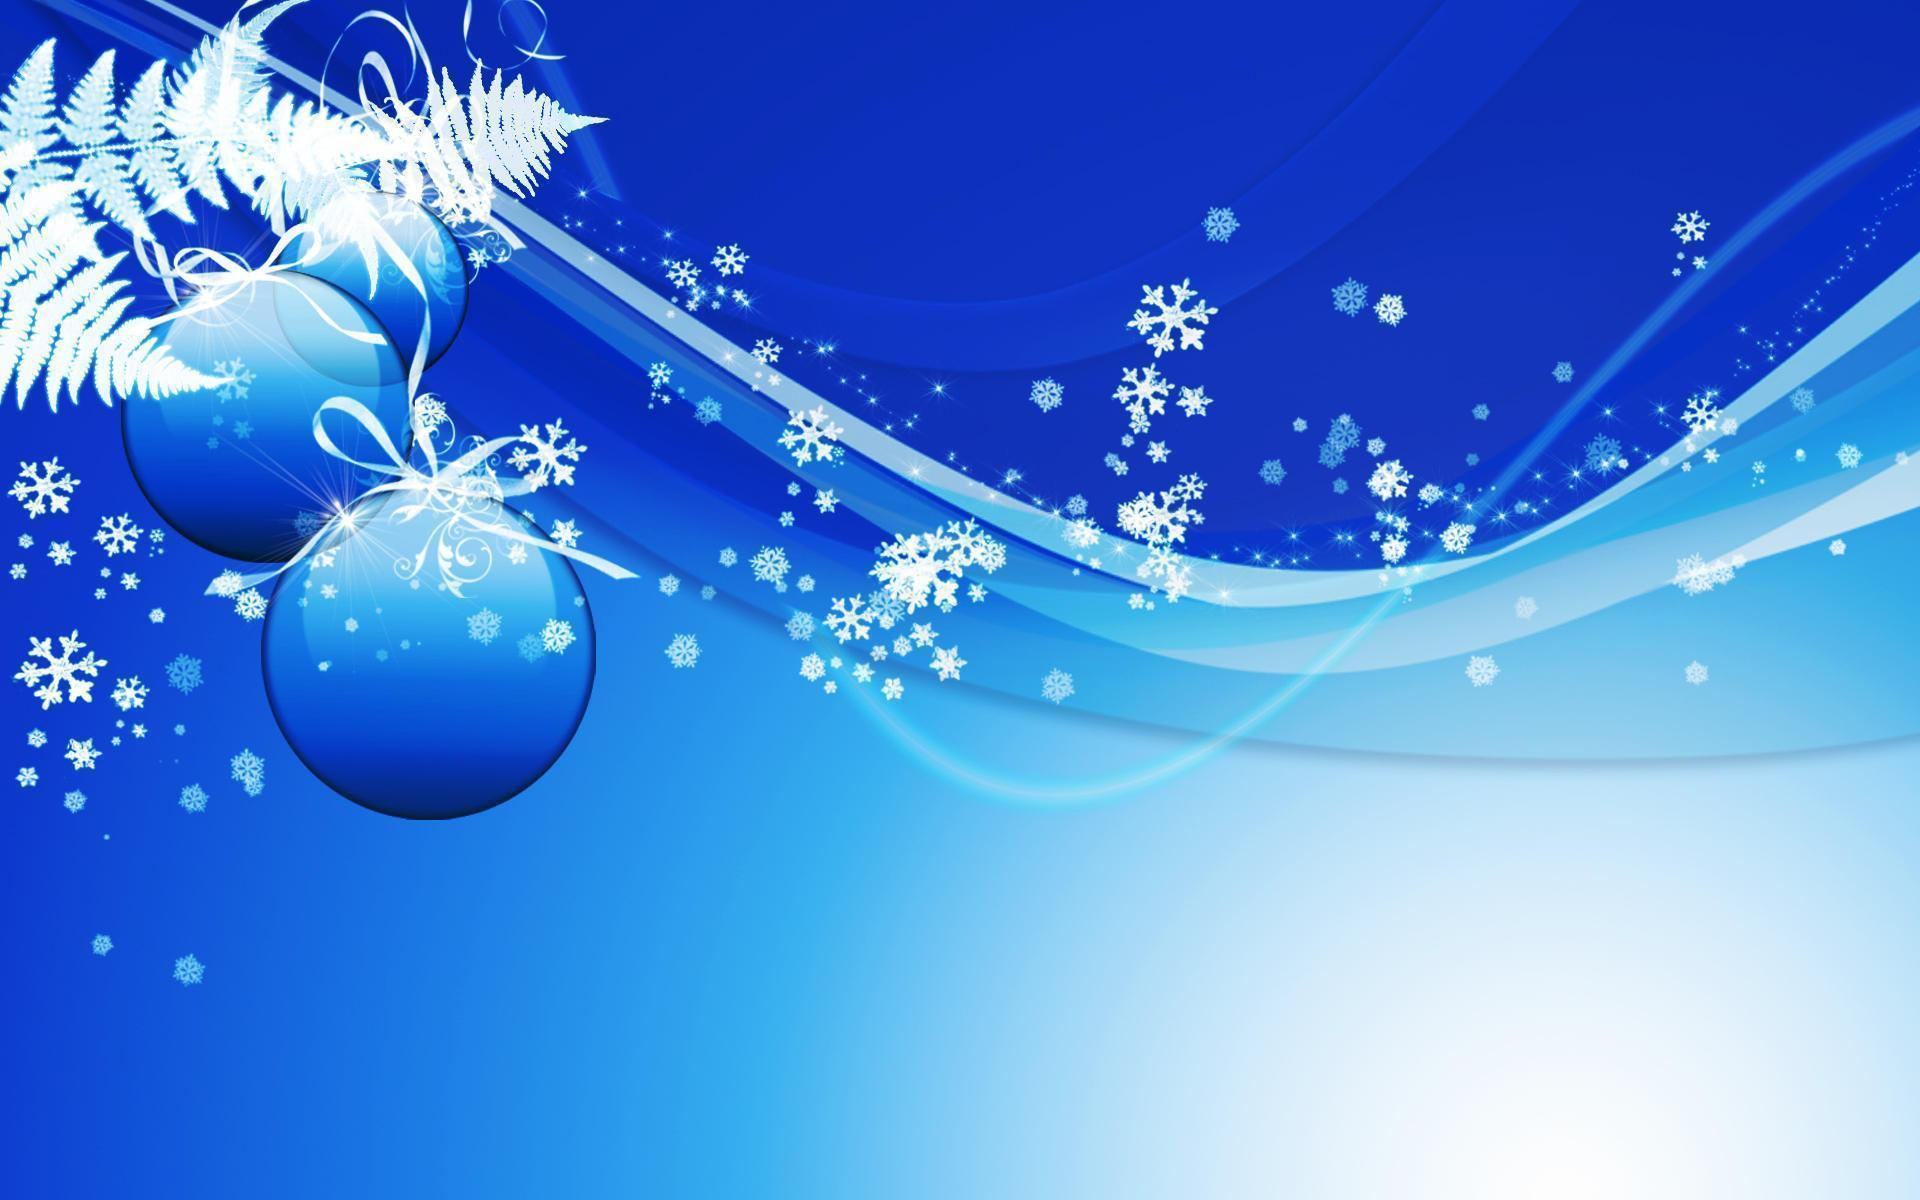 Free Holiday Backgrounds Image - Wallpaper Cave